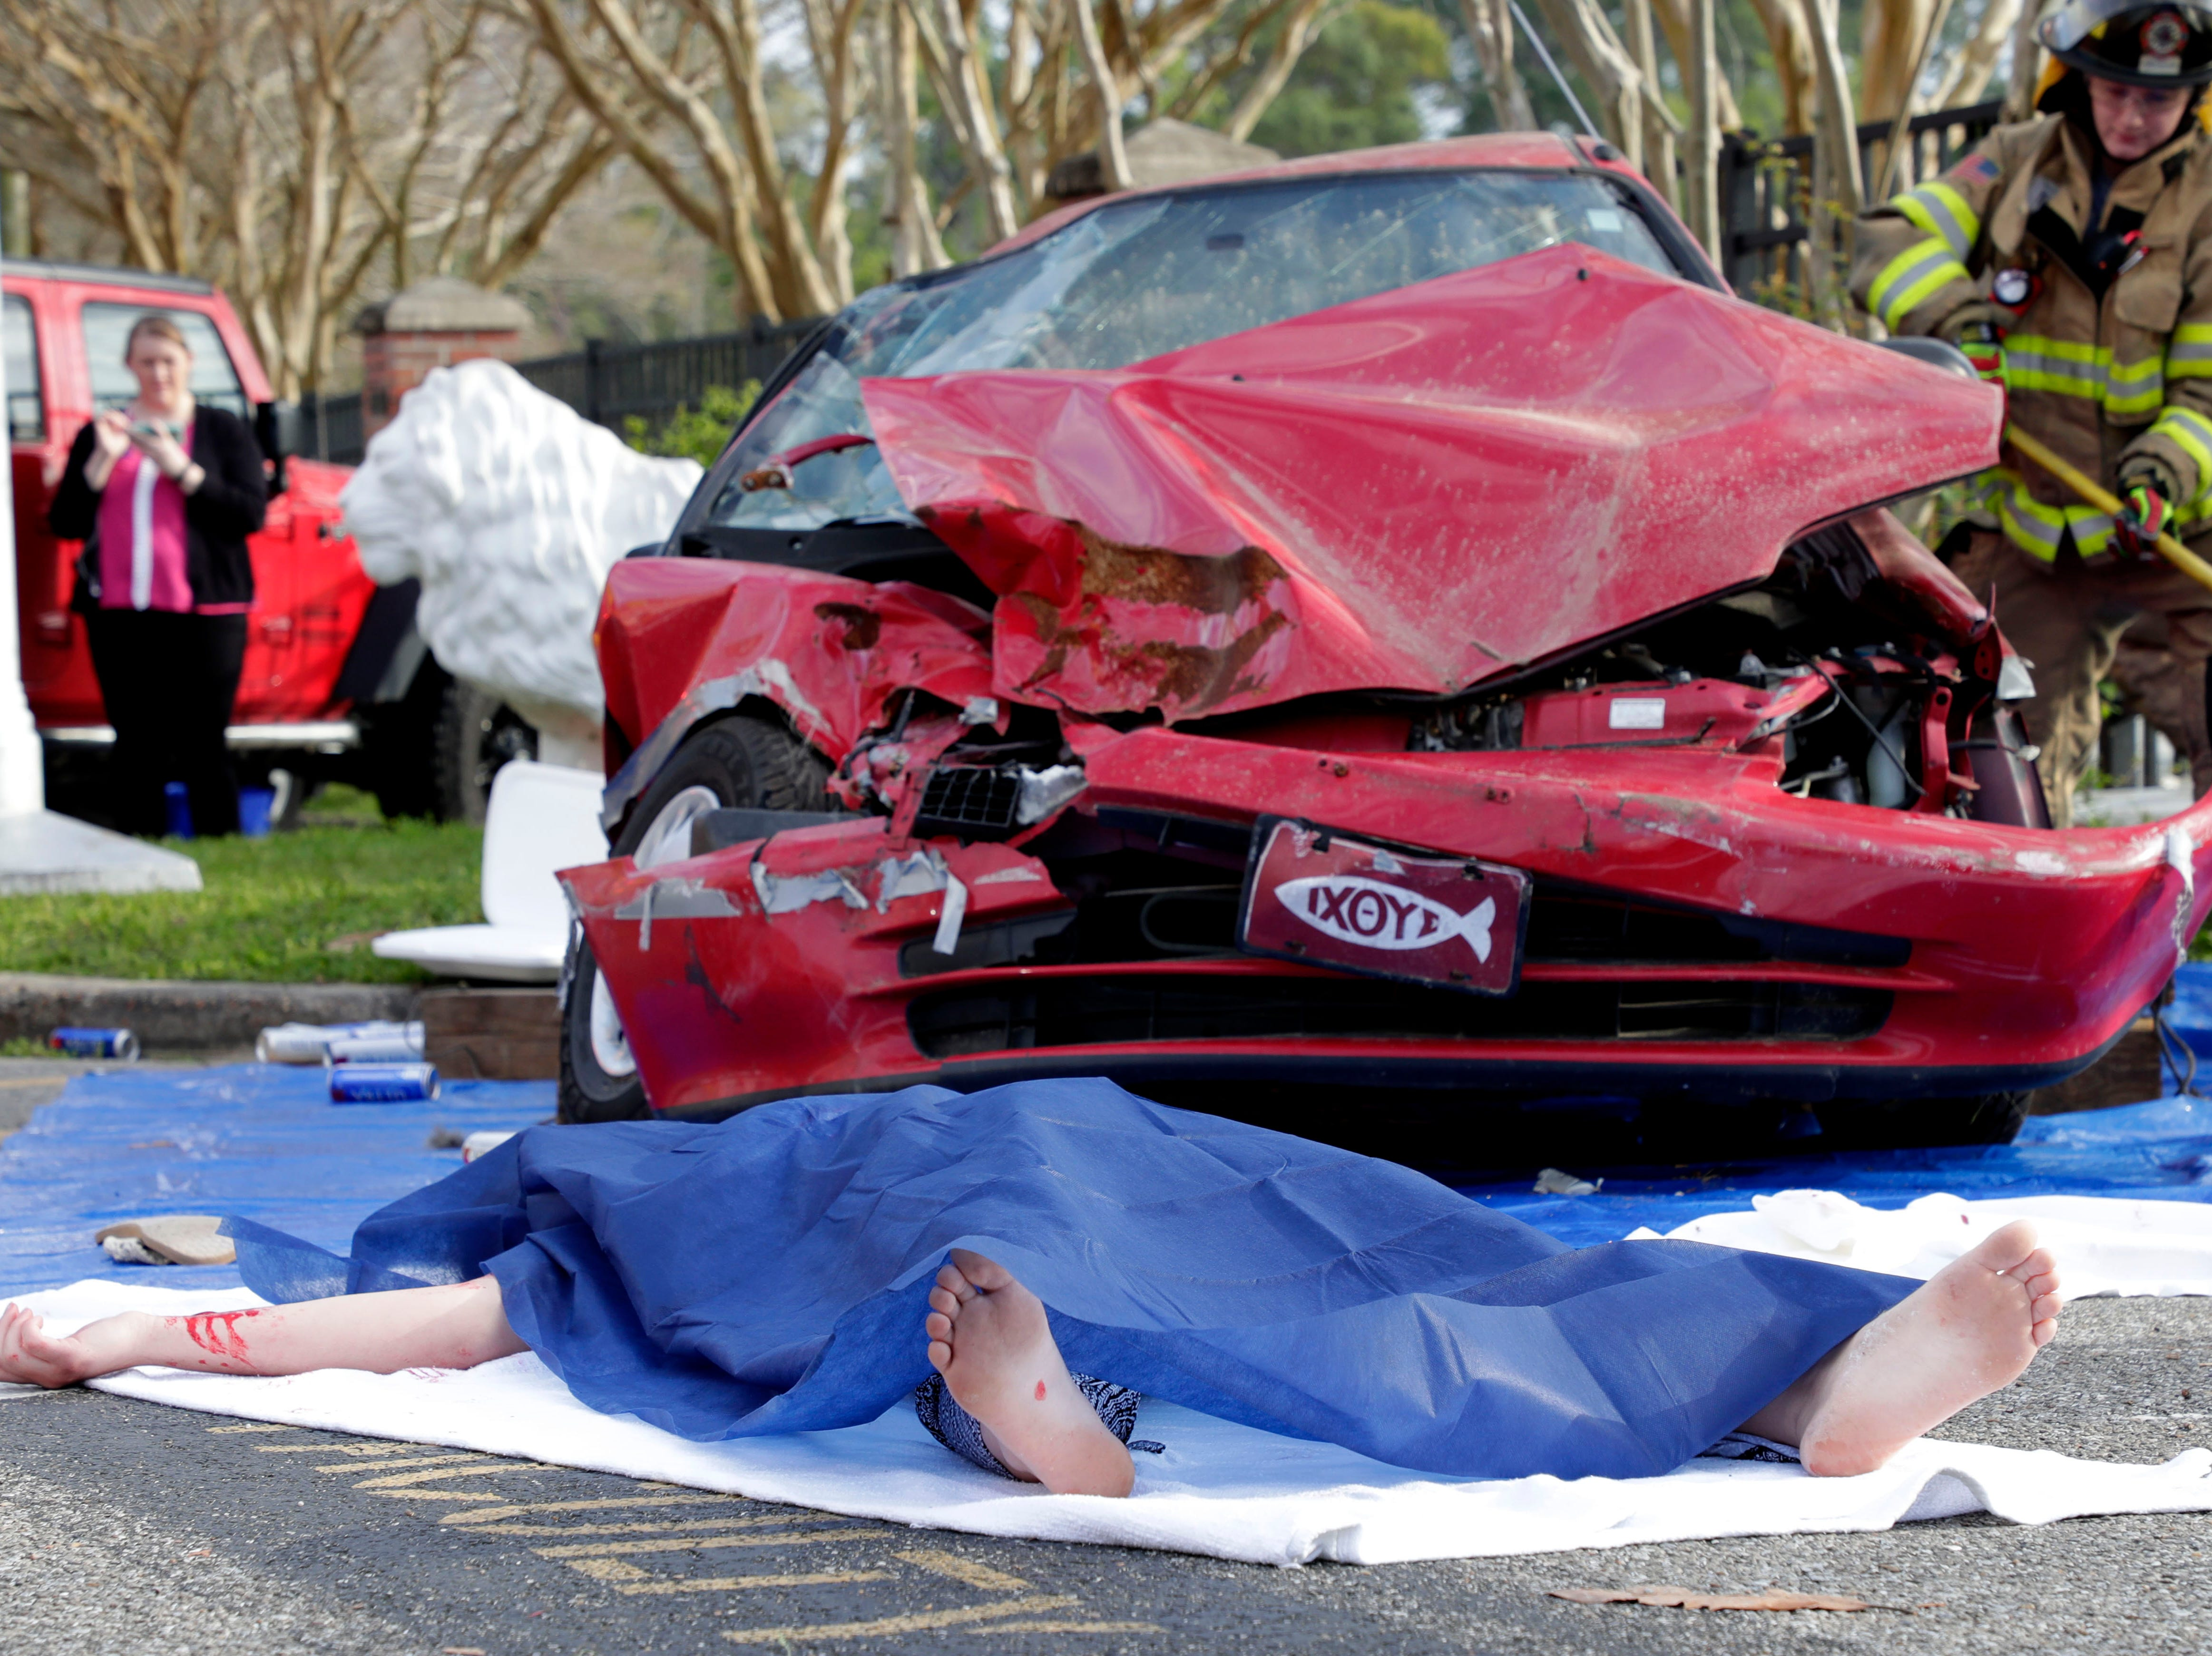 Christina Huettel lays in front of a car severely damaged from a drinking and driving accident. Leon High School partners with the county safety officials to give a simulation on the consequences of drunk driving before the students leave for spring break Friday, March 15, 2019.